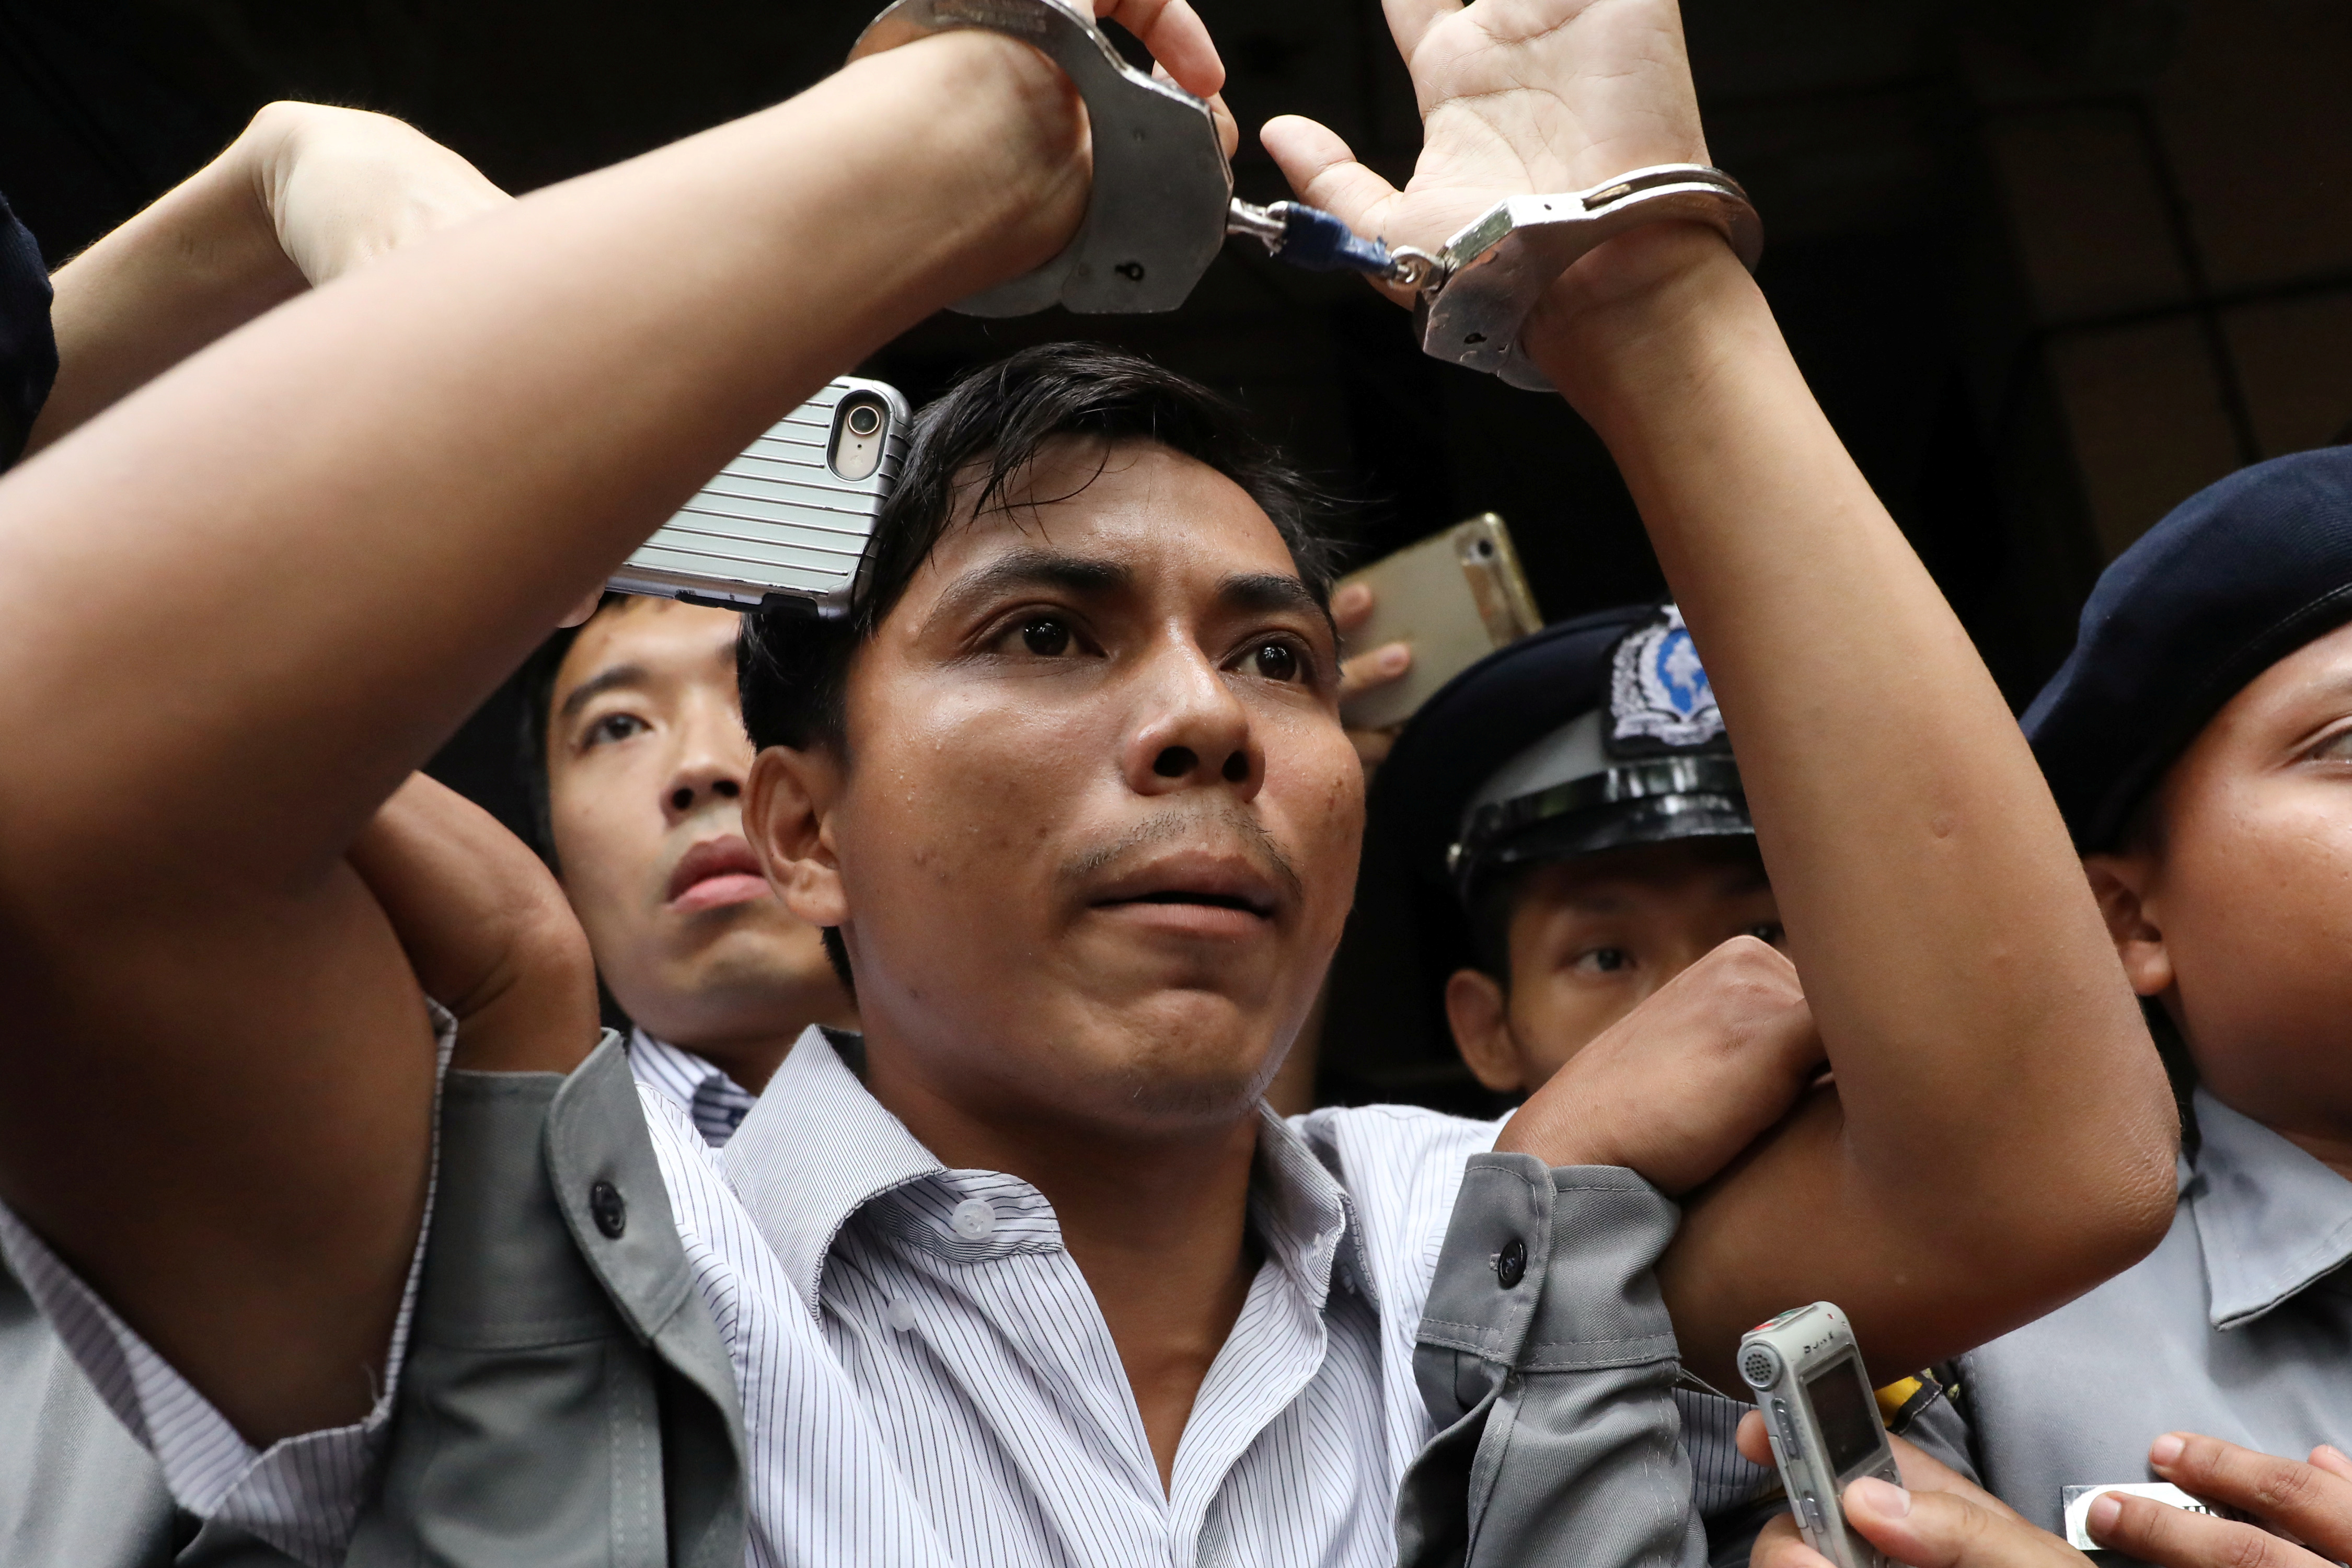 Reuters journalists Kyaw Soe Oo leaves after listening to the verdict at Insein court in Yangon, Myanmar, September 3, 2018. REUTERS/Ann Wang - RC1AF6D4AA80